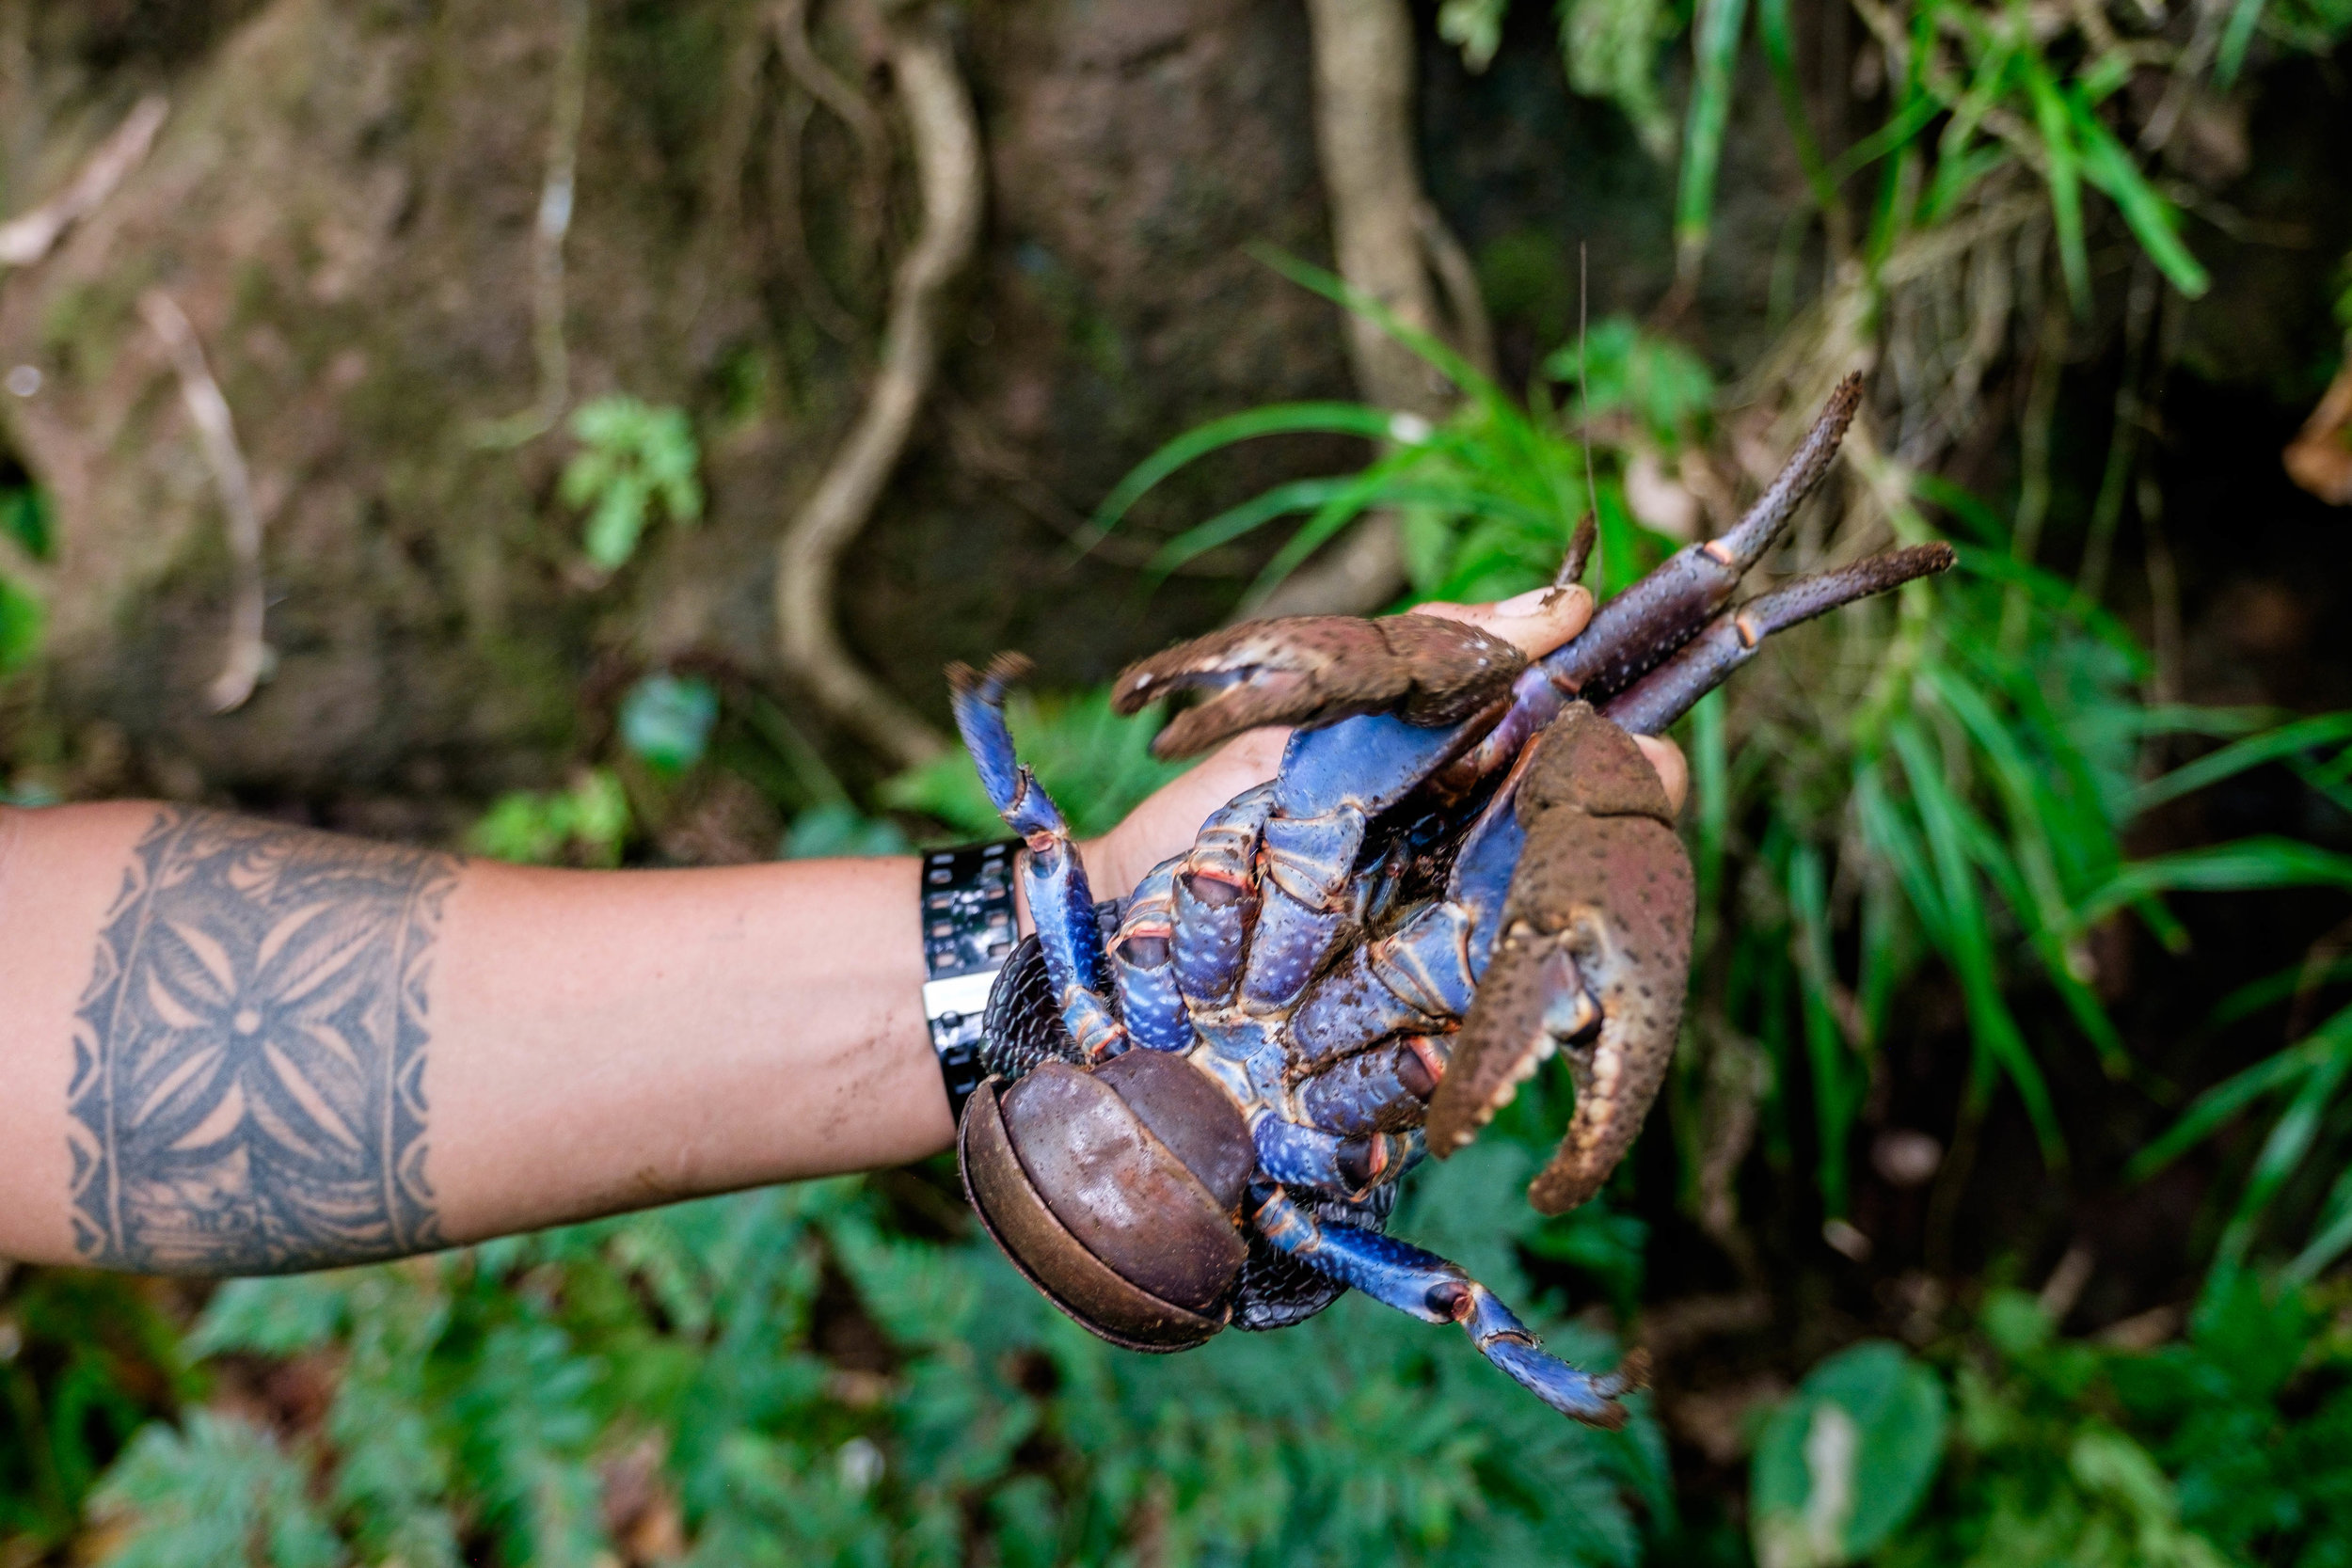 Coconut crab!